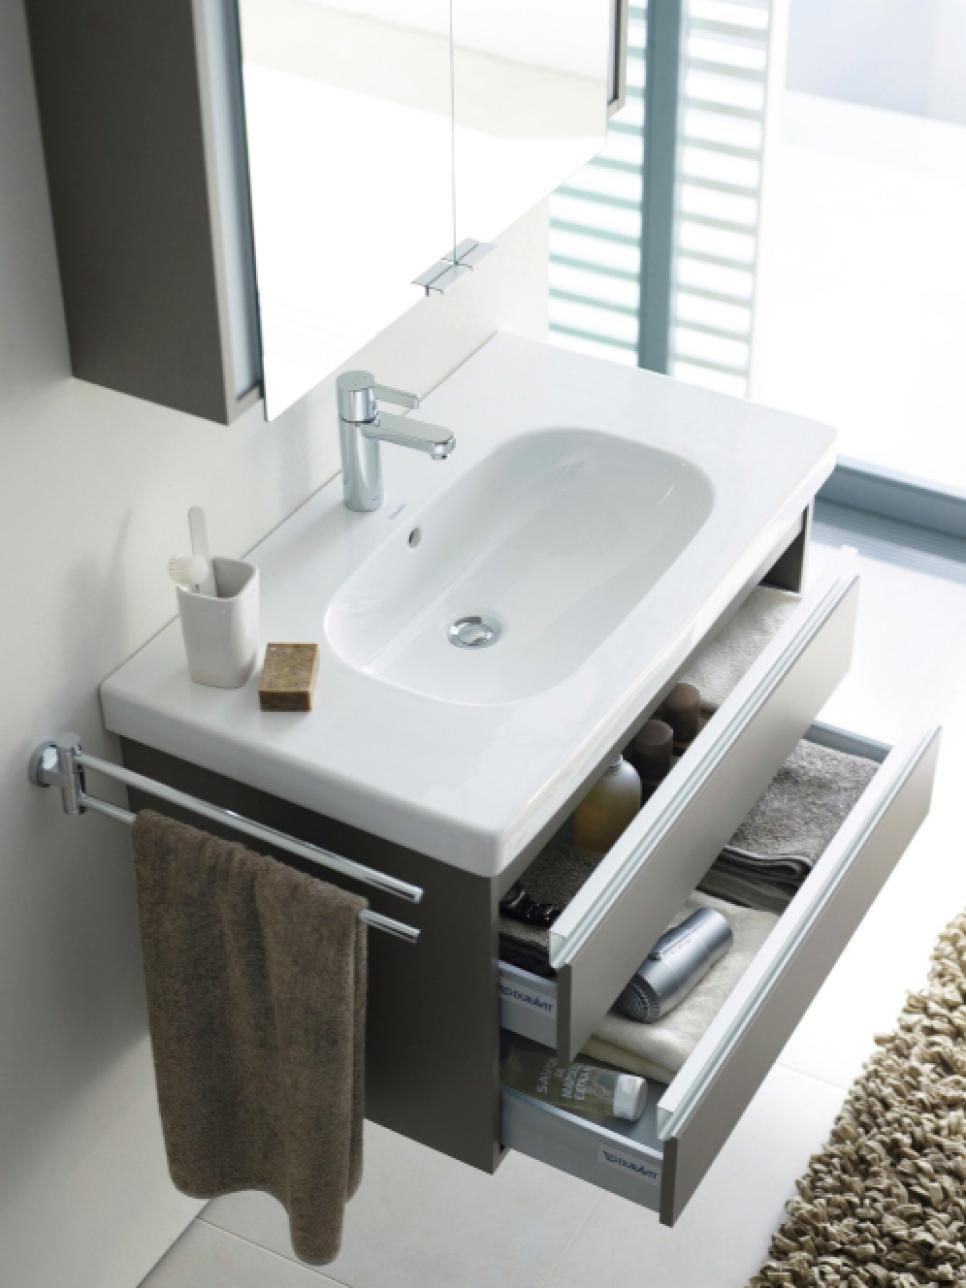 Bathroom sink cabinets ideas - Bathroom Sink Cabinets Ideas 41